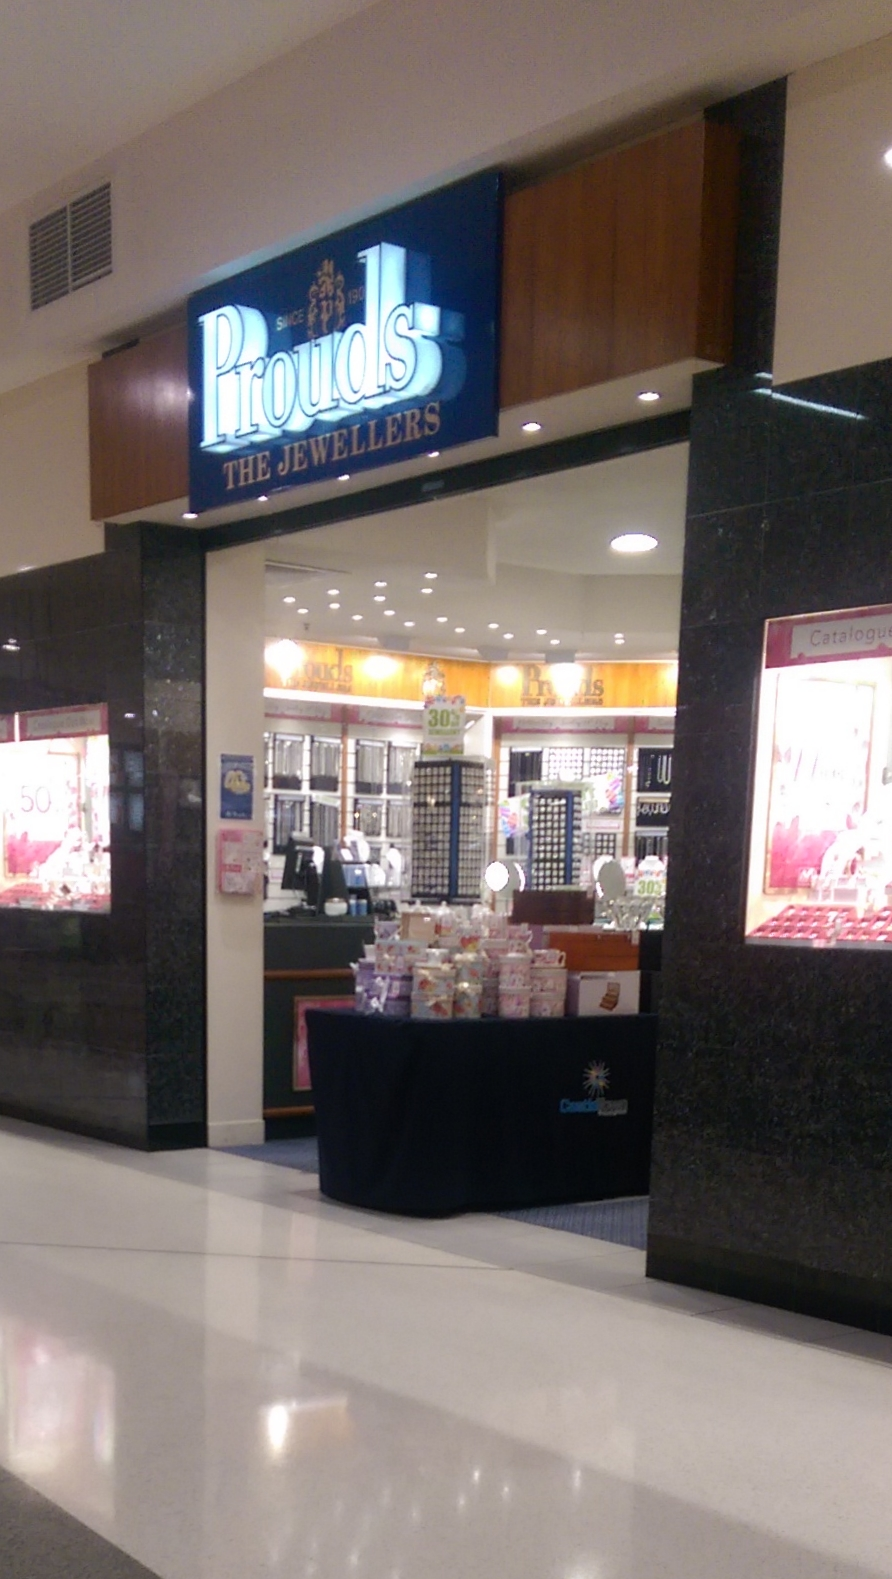 Prouds The Jewellers | jewelry store | Shop 106, Cnr Woolcock St & Kings Rd, Hyde Park QLD 4812, Australia | 0747722071 OR +61 7 4772 2071